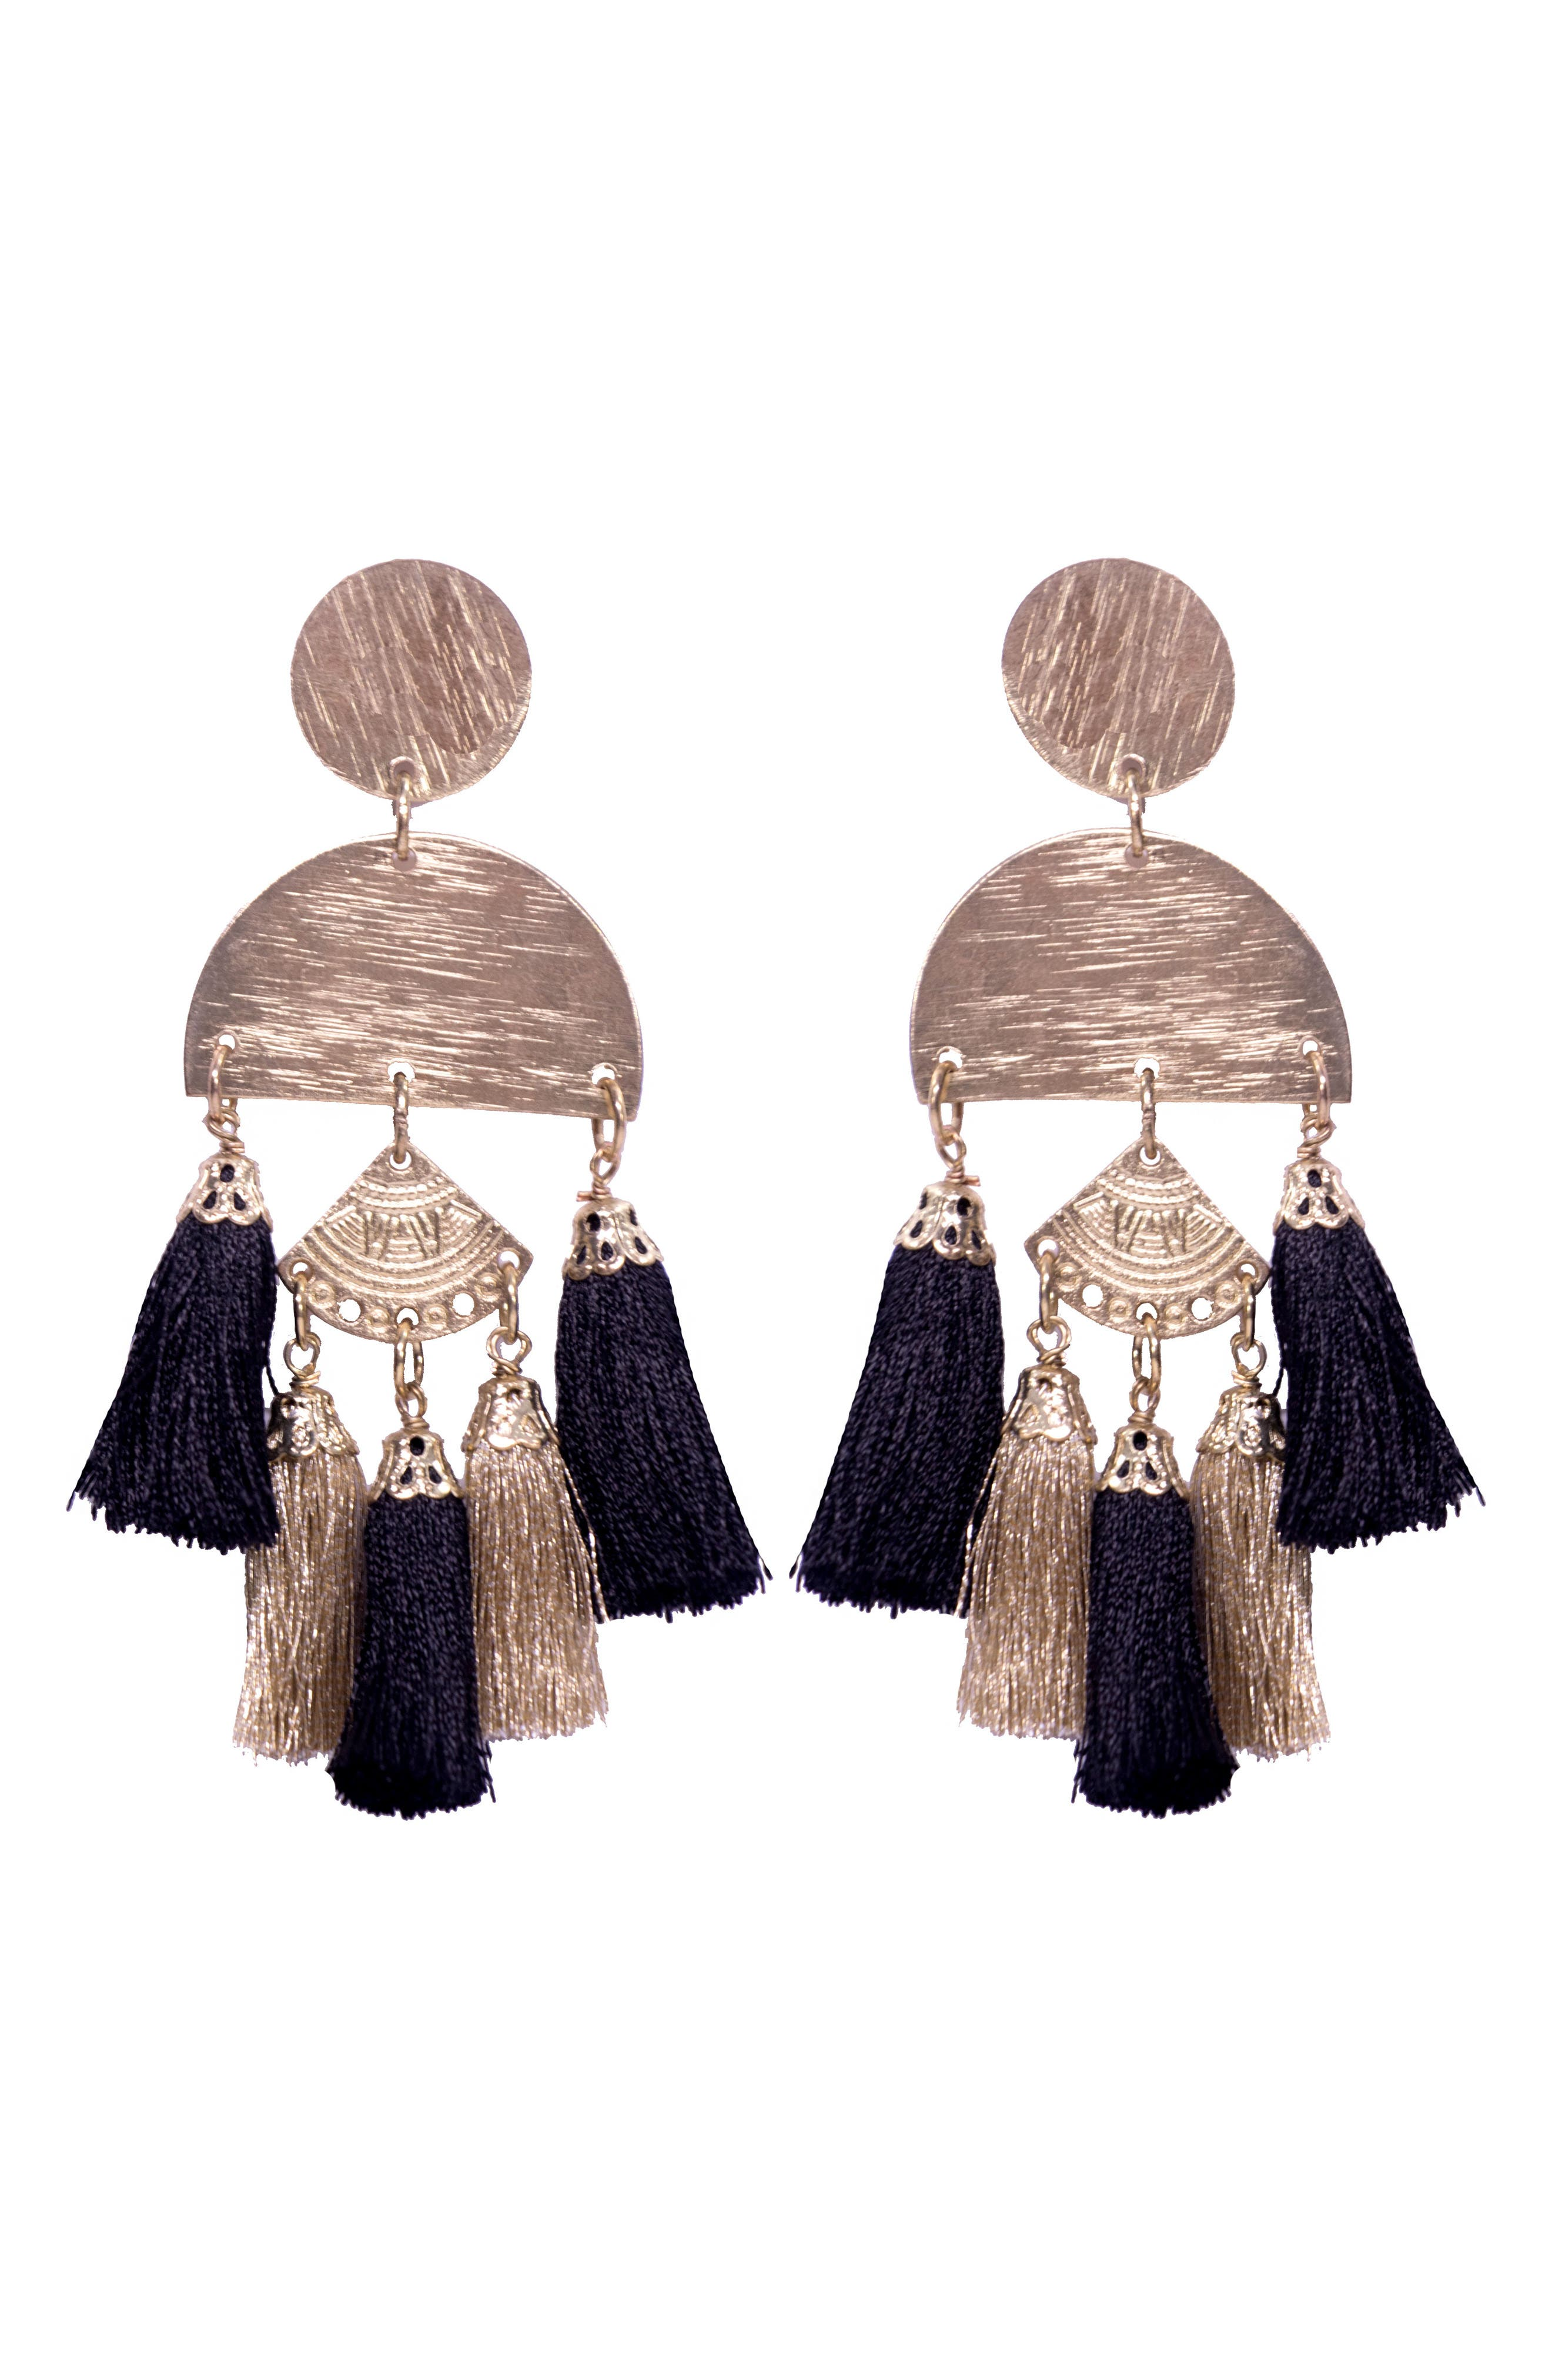 Bali Tassel Earrings,                             Main thumbnail 1, color,